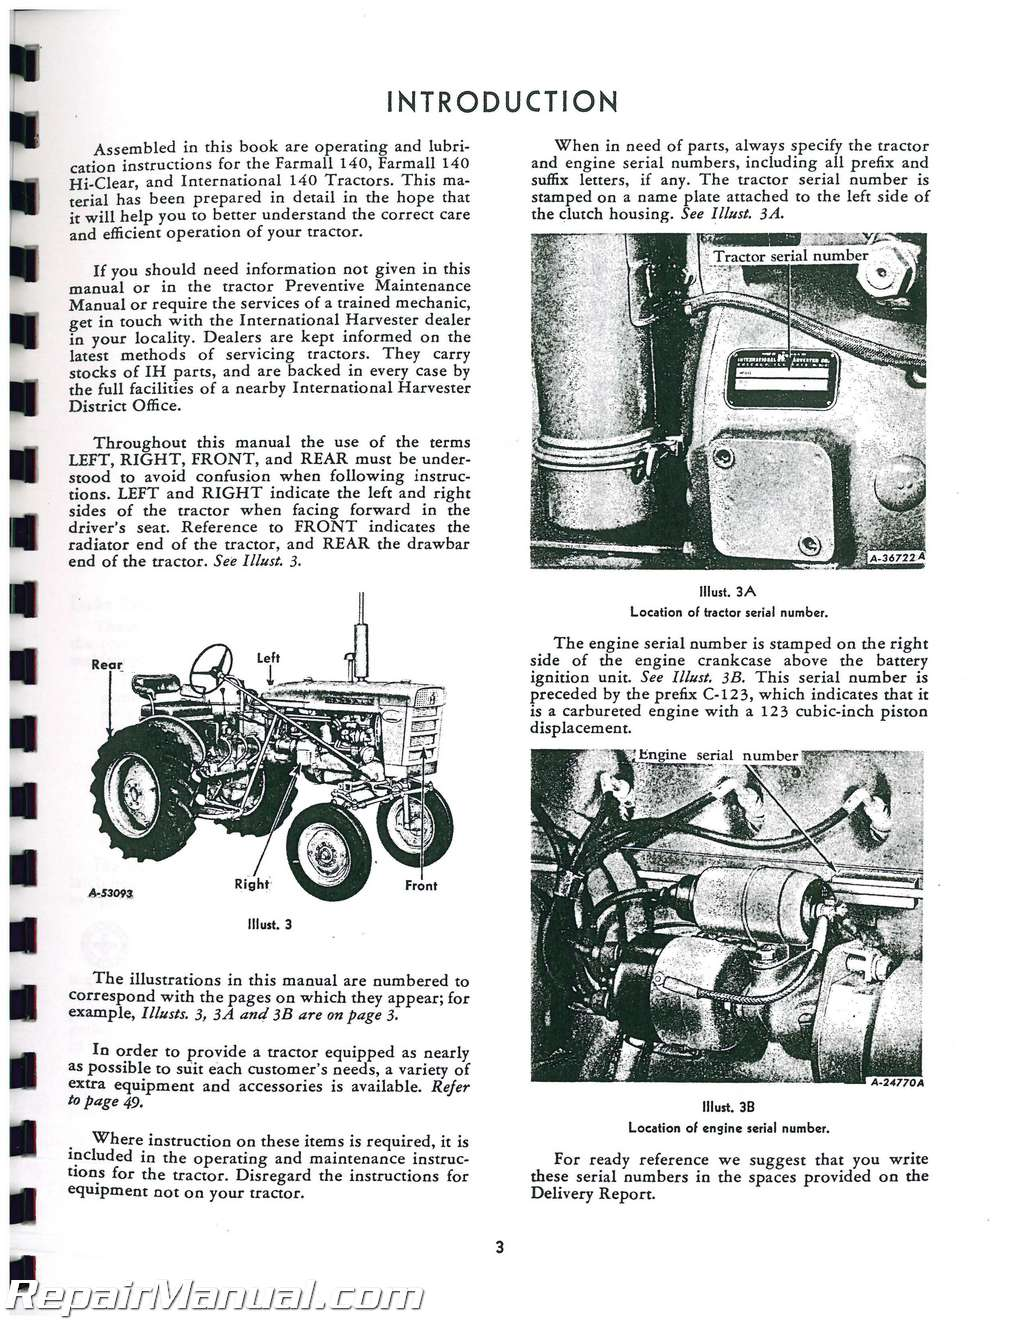 Electrical Wiring Diagram Ih 856 All Kind Of Diagrams 350 Farmall 300 Engine And Fuse Box